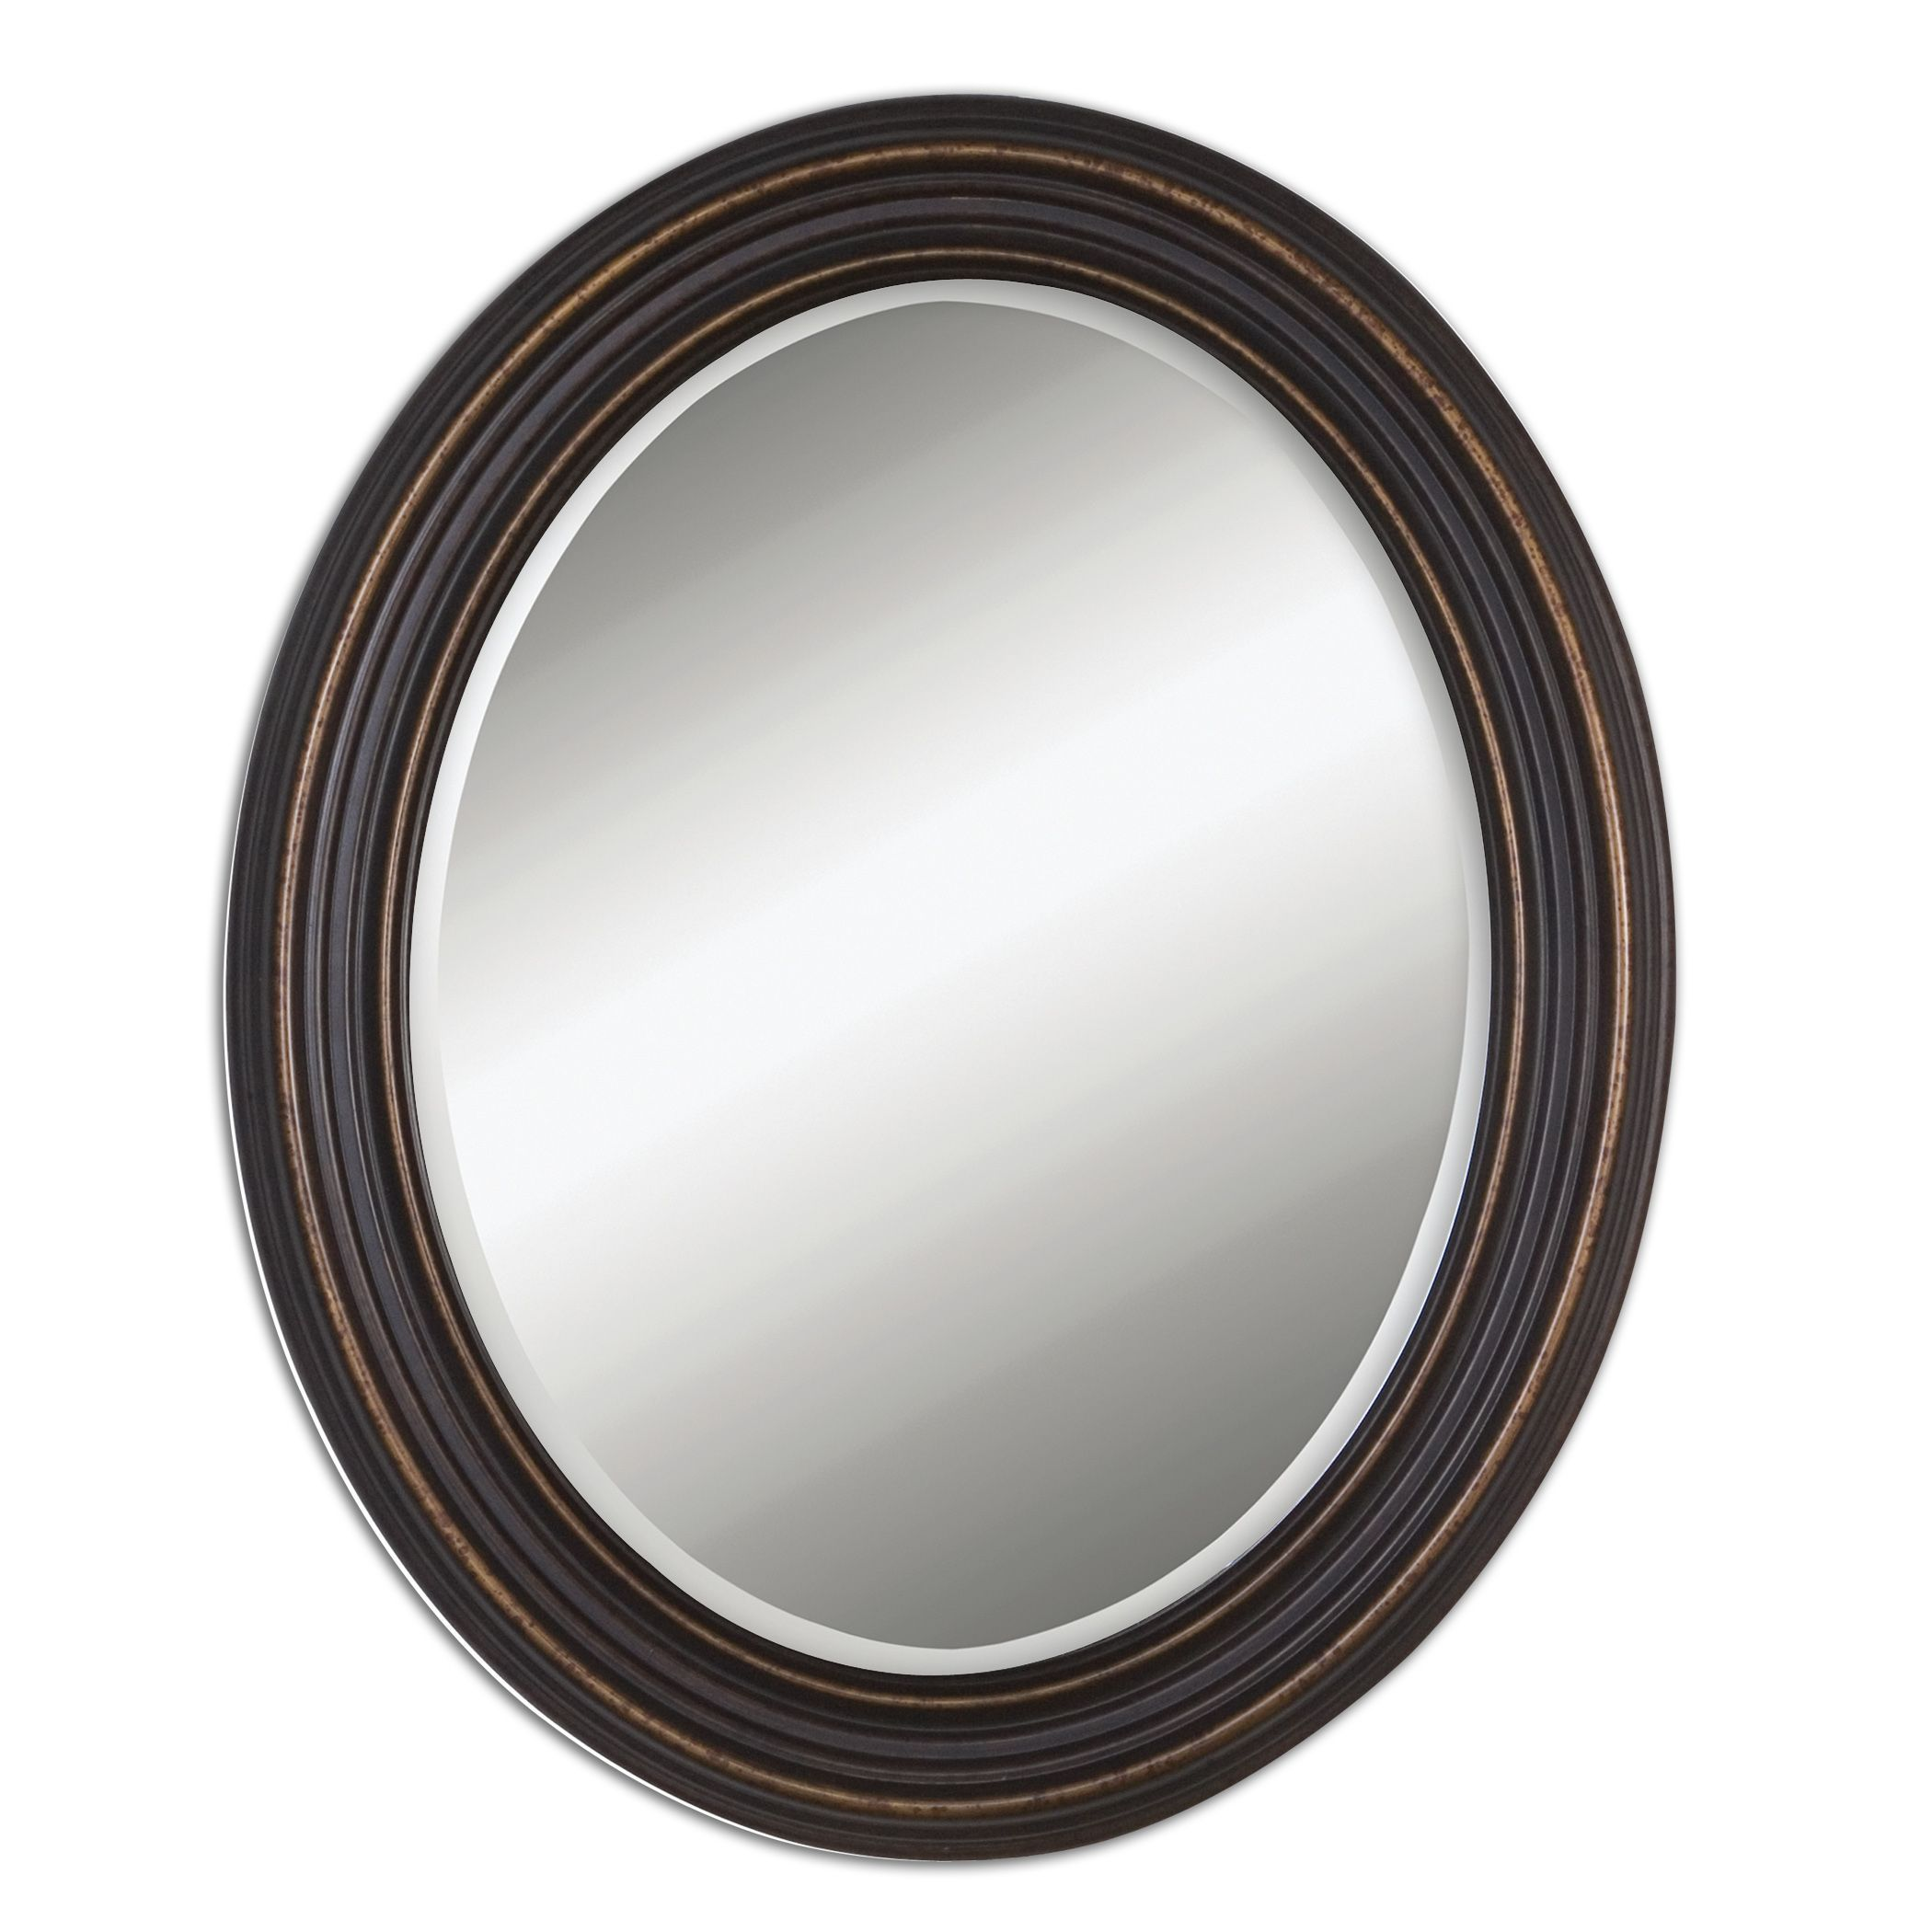 mirrors accessories bath set new amazon of bronze piece bathroom rubbed oil mirror lovely